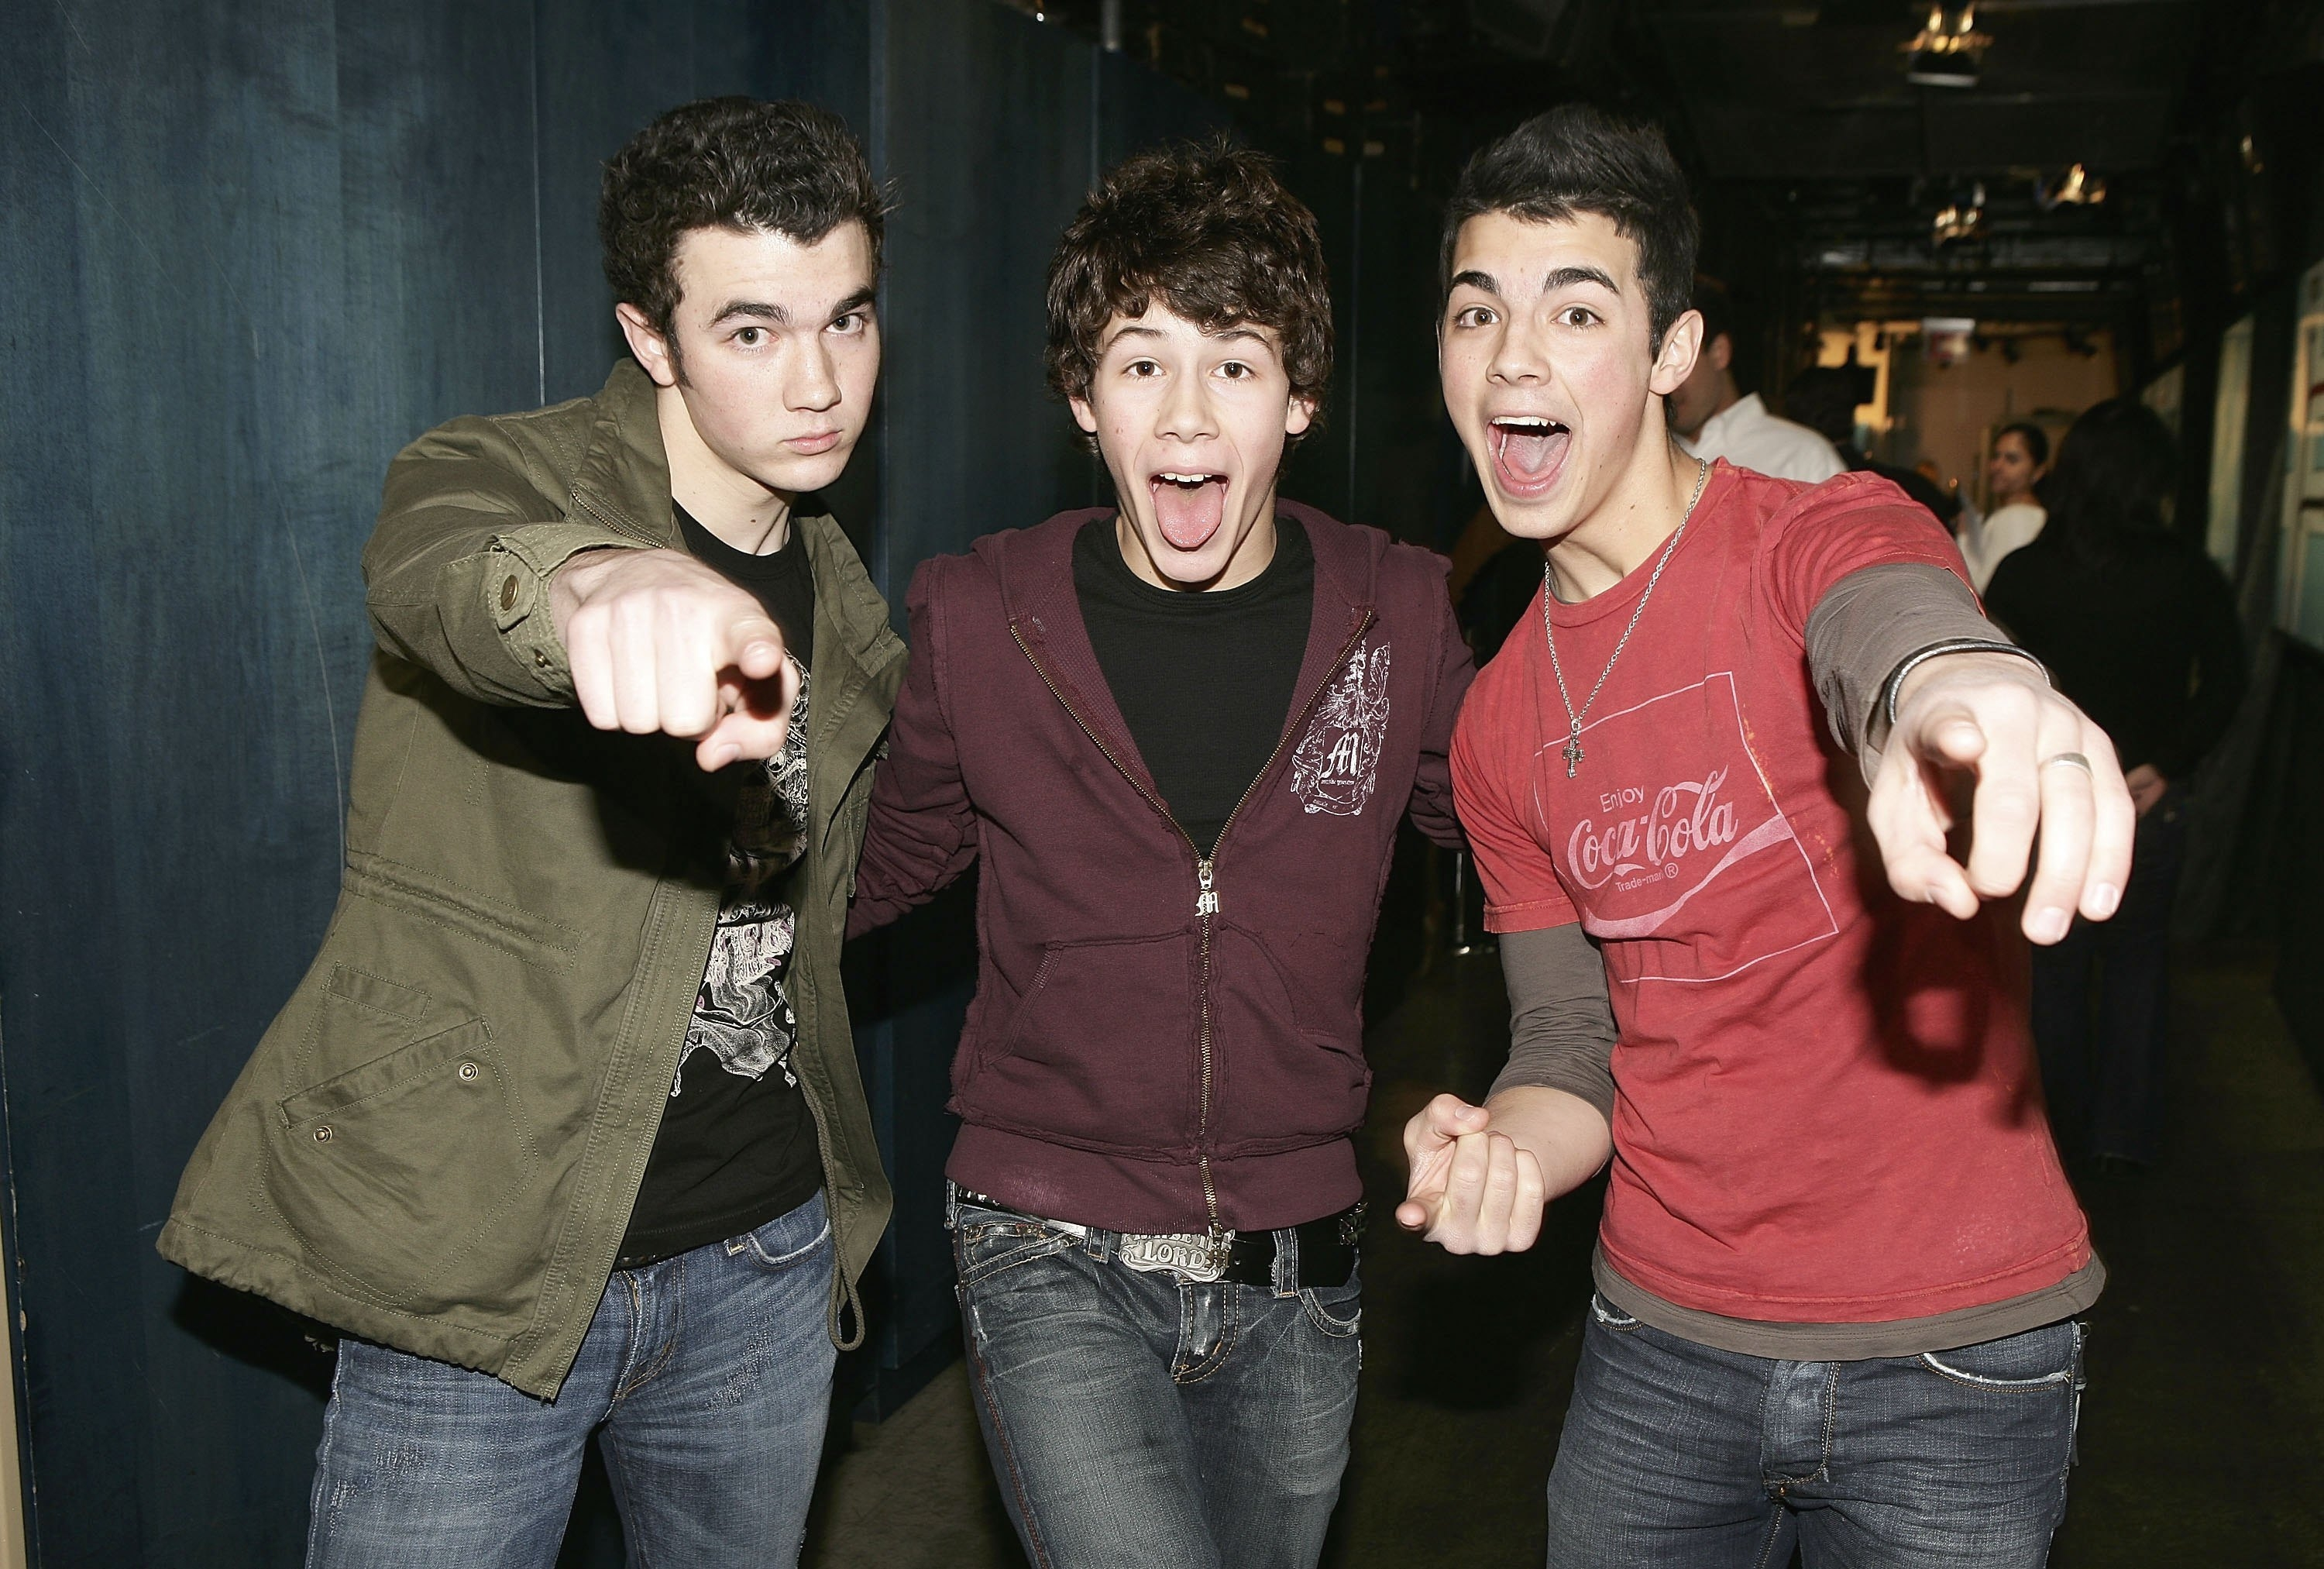 Kevin, Nick and Joe Jonas, shown here in happier times, have announced they will no longer perform together.